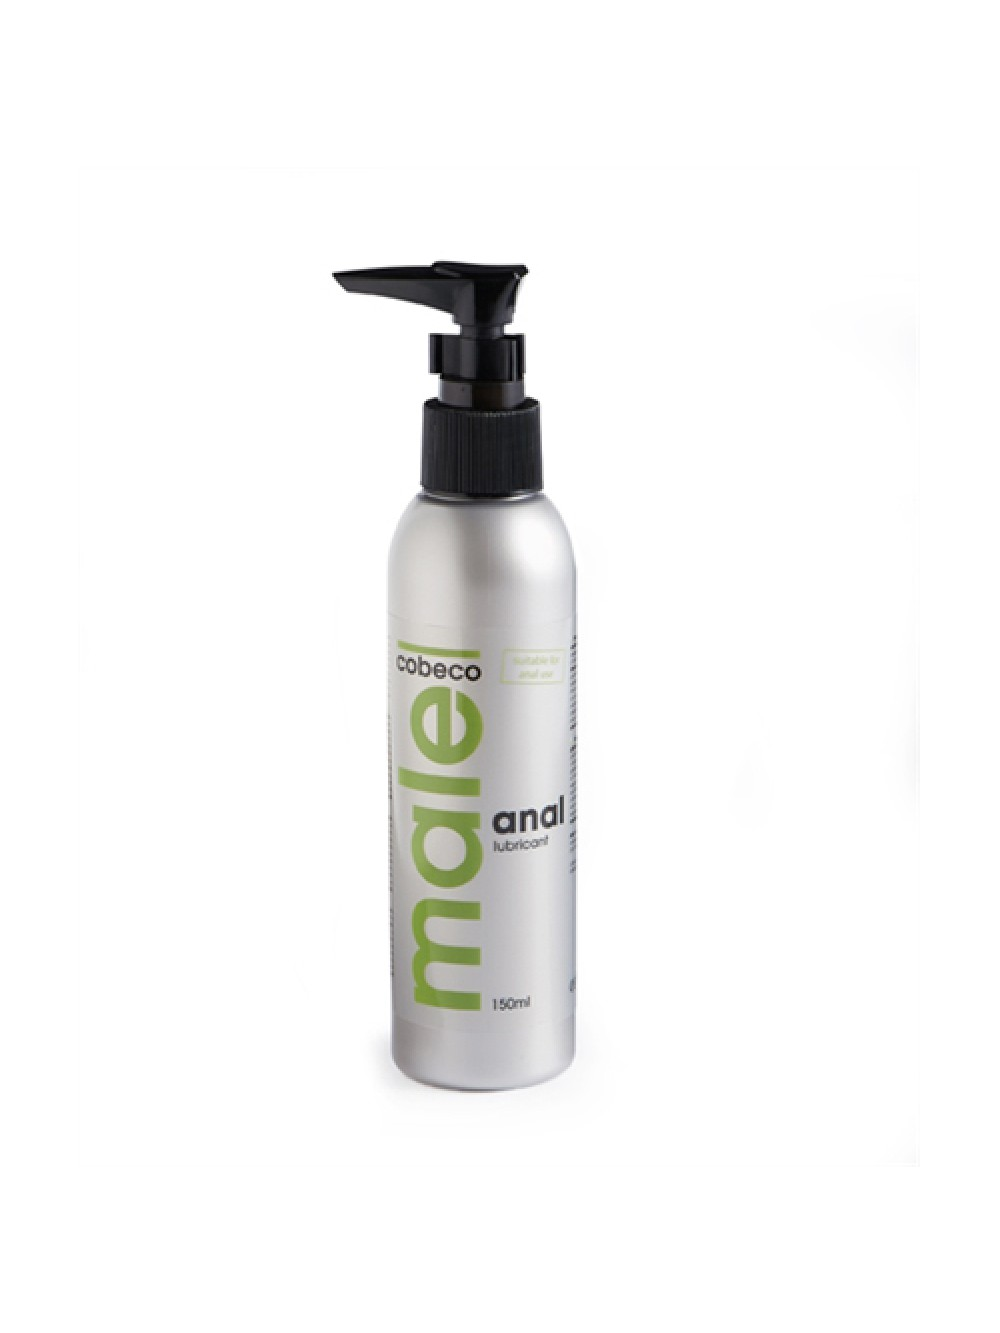 MALE Cobeco Lubricant Anal 150ml